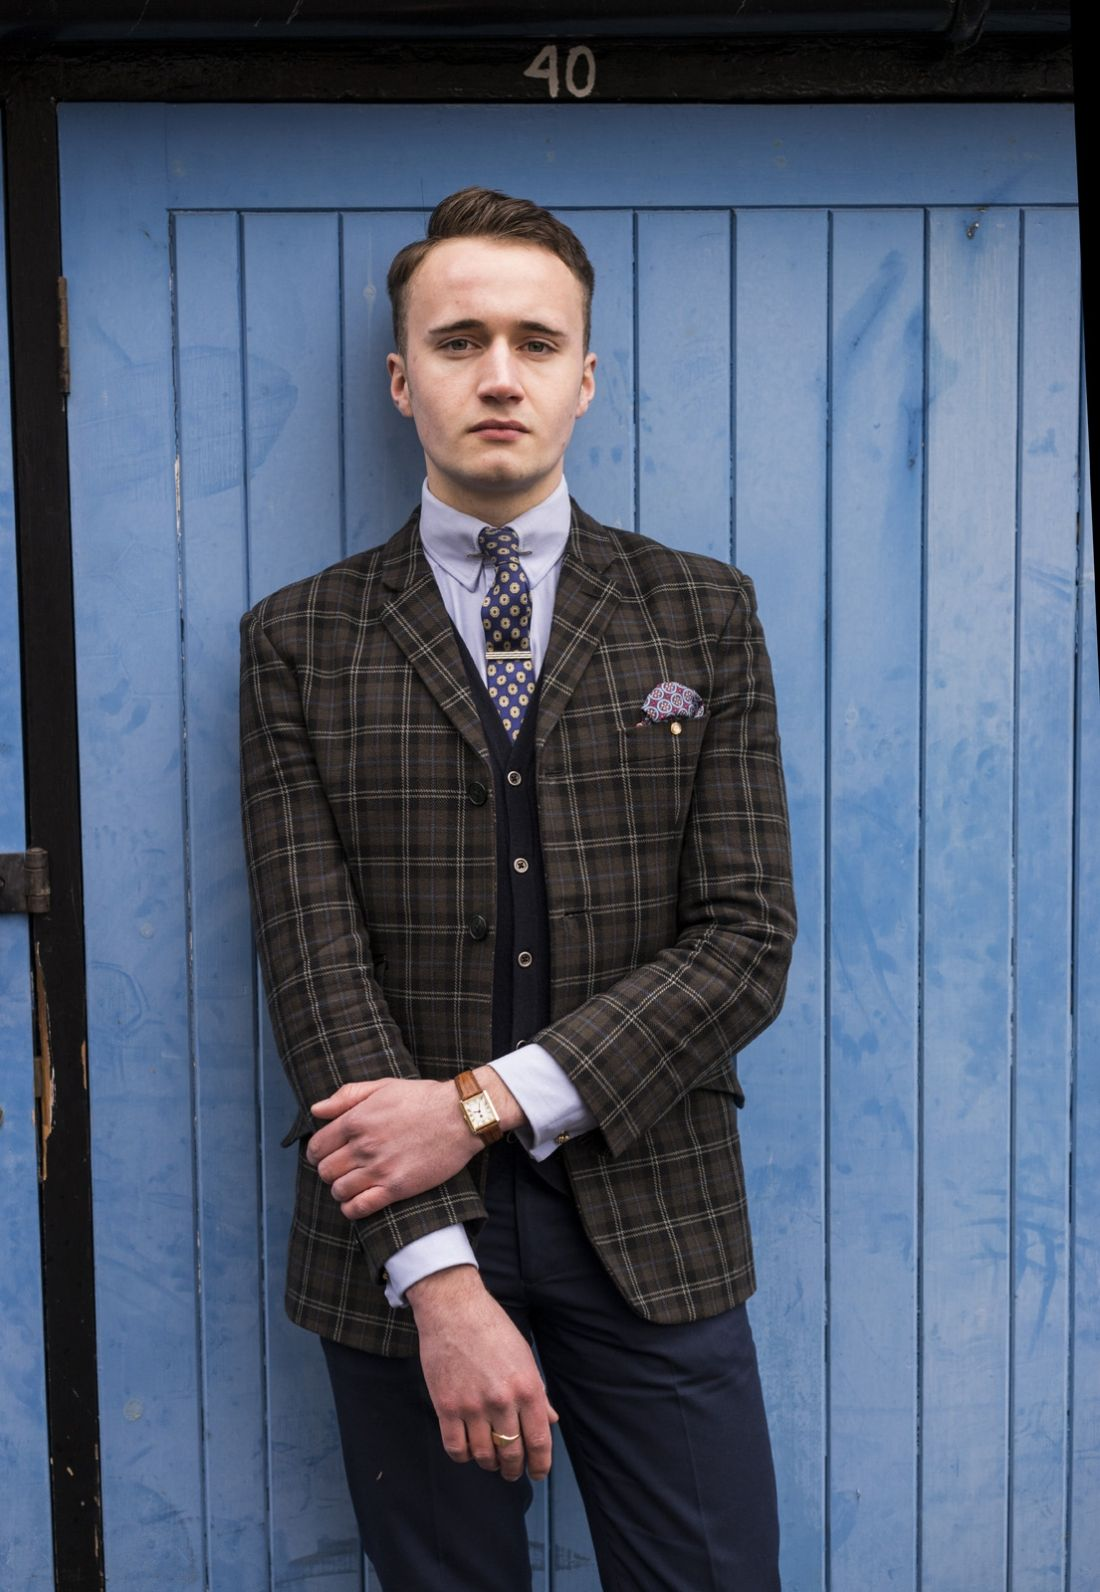 Barney mccann subculture stylish double breasted suit